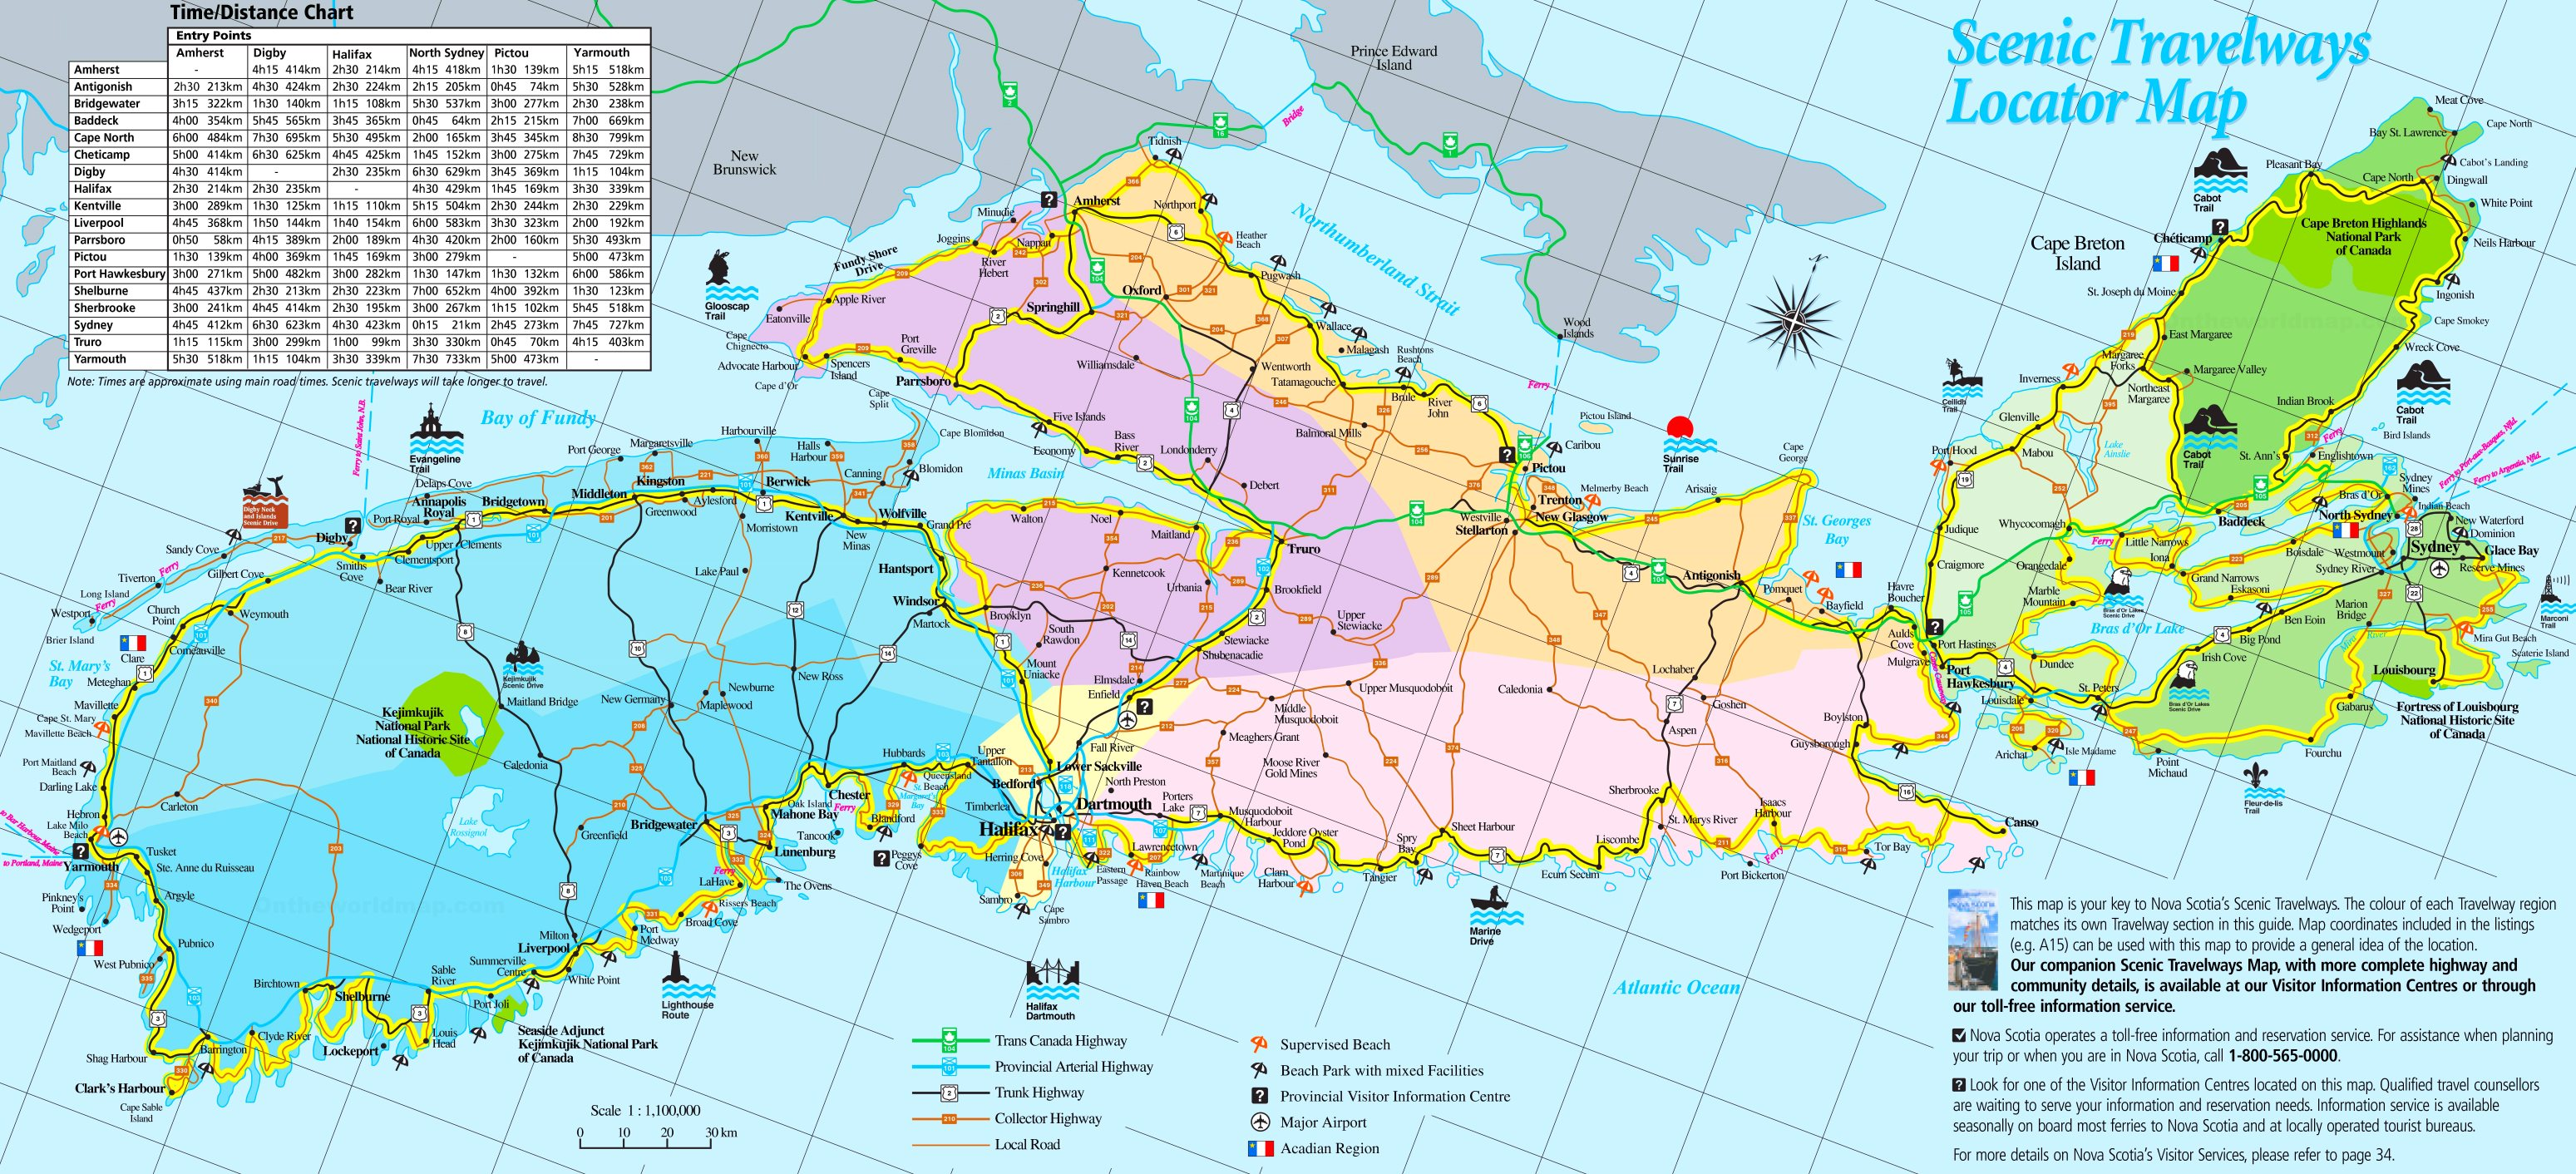 Large detailed tourist map of Nova Scotia on newfoundland and labrador, new brunswick map, alberta map, quebec map, british columbia map, iceland map, northwest territories, cabot trail map, british columbia, canada map, prince edward island, north america map, cape breton island map, new brunswick, quebec city, ontario map, australia map, saskatchewan map, québec, pei map, peggy's cove map, world map, nevada map, maine map, nfld map, bay of fundy map, scotland map,